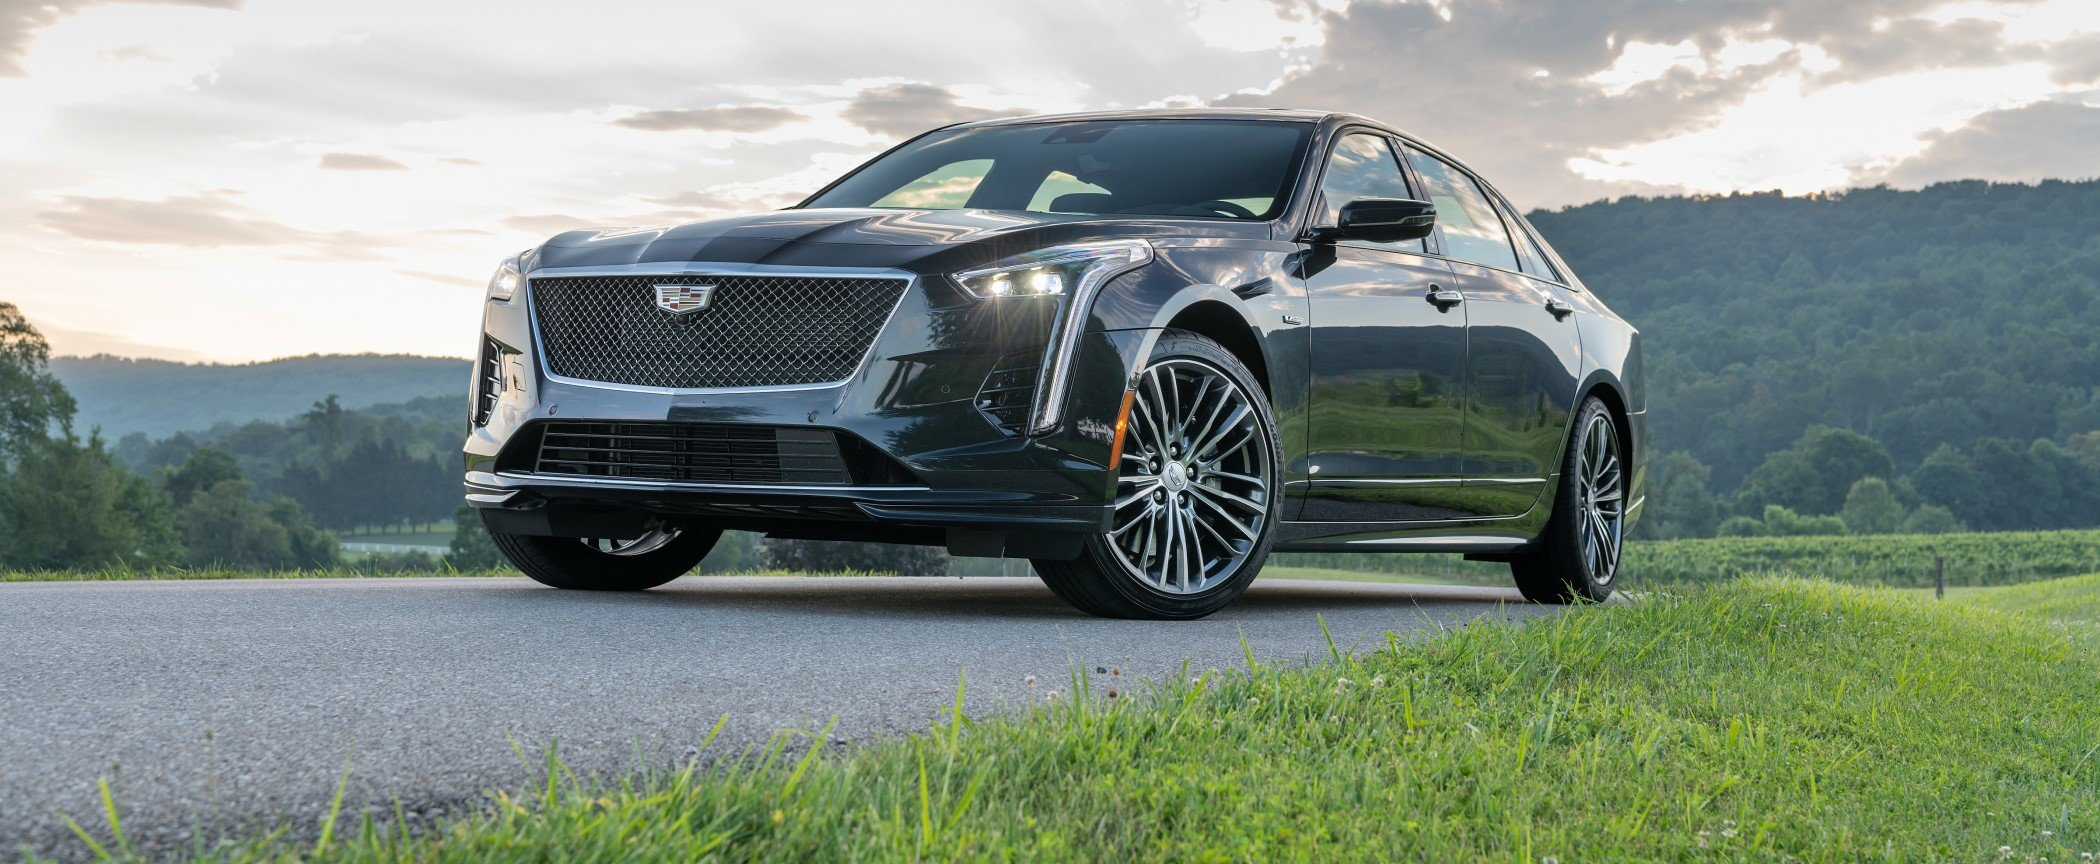 Cadillac Cts V Lease >> Cadillac Ct6 Lease Offers And Deals Janesville Wi